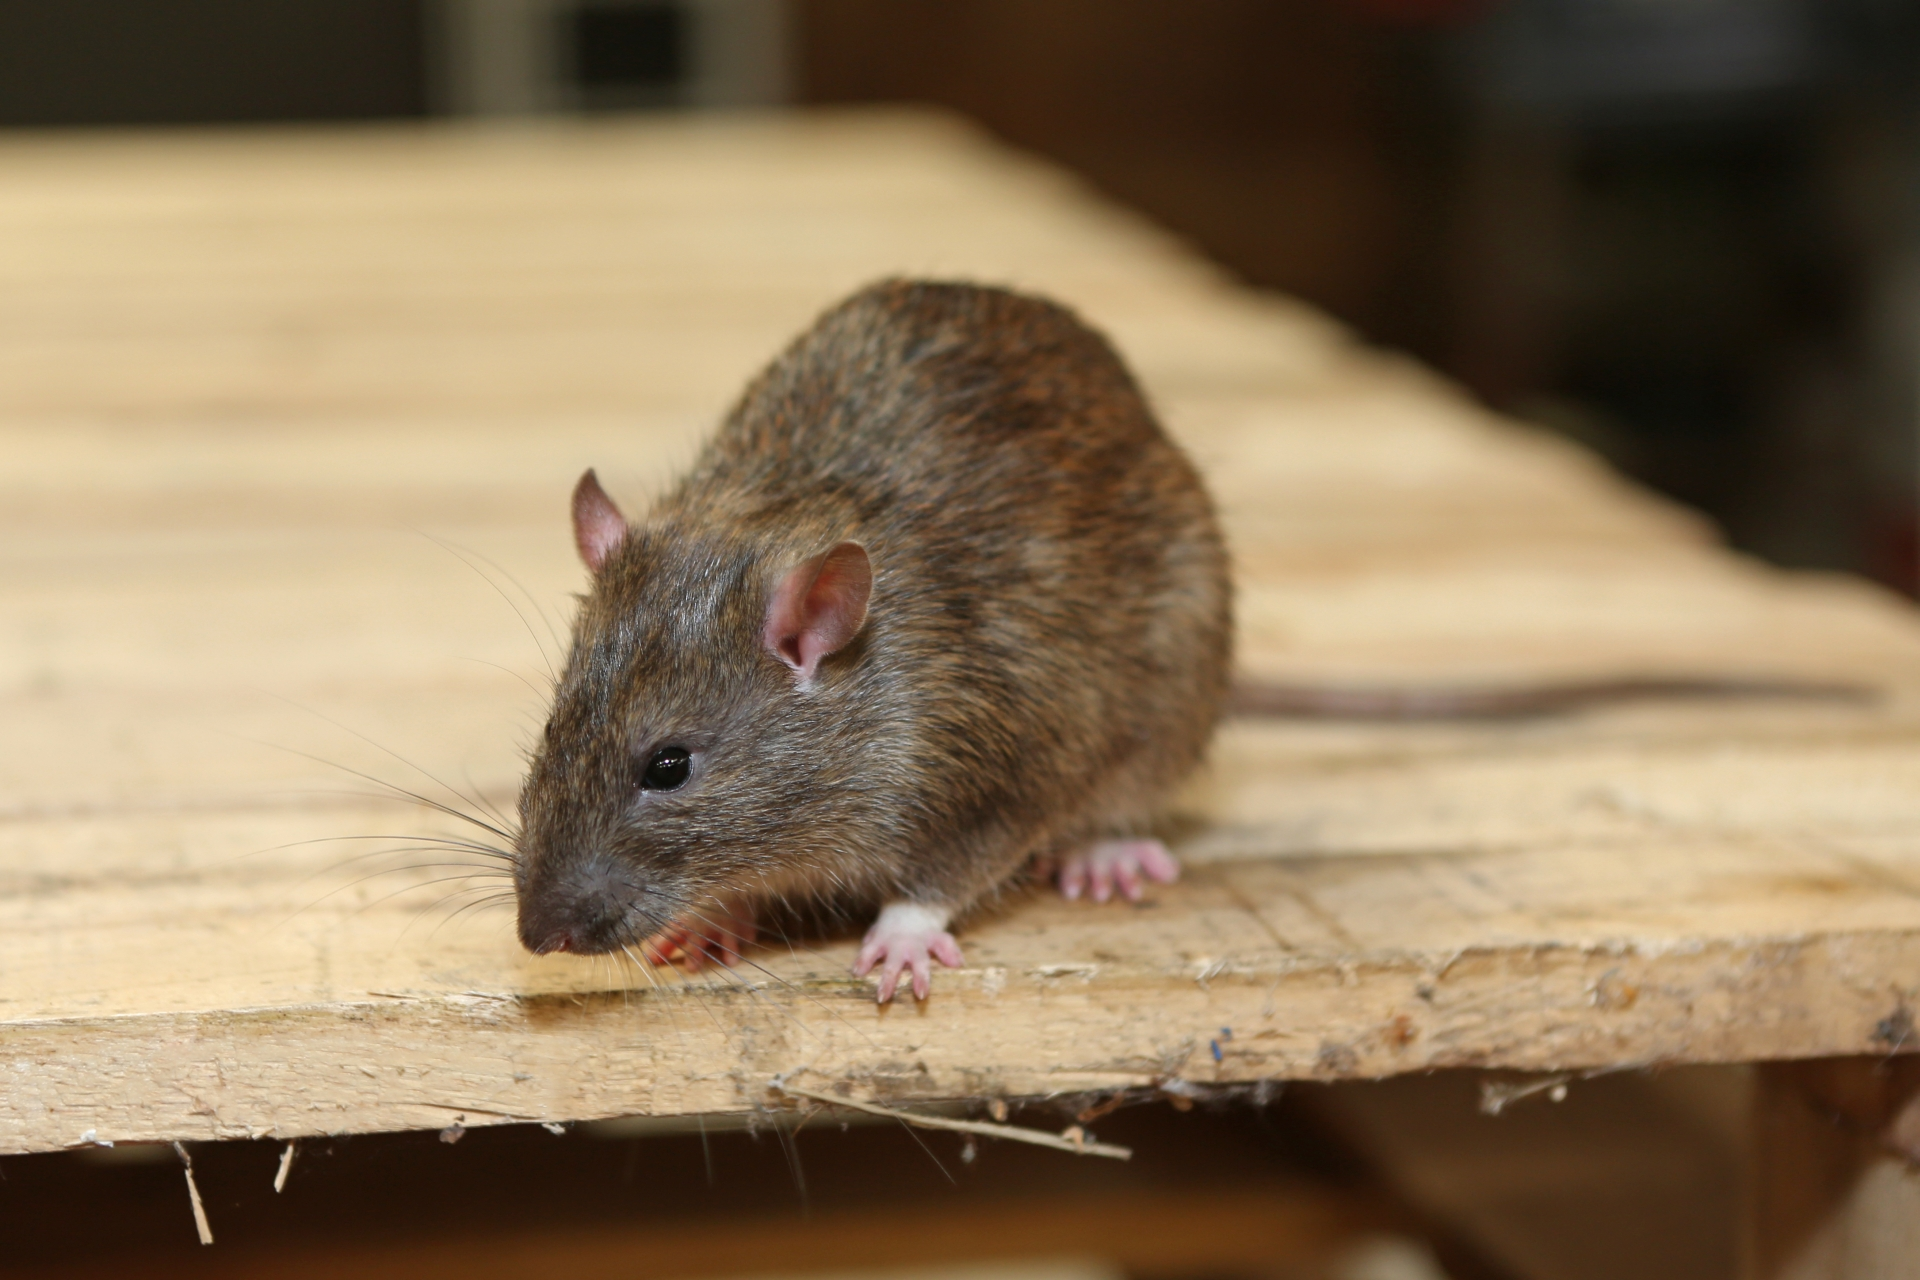 Rat Control, Pest Control in Collier Row, RM5. Call Now 020 8166 9746